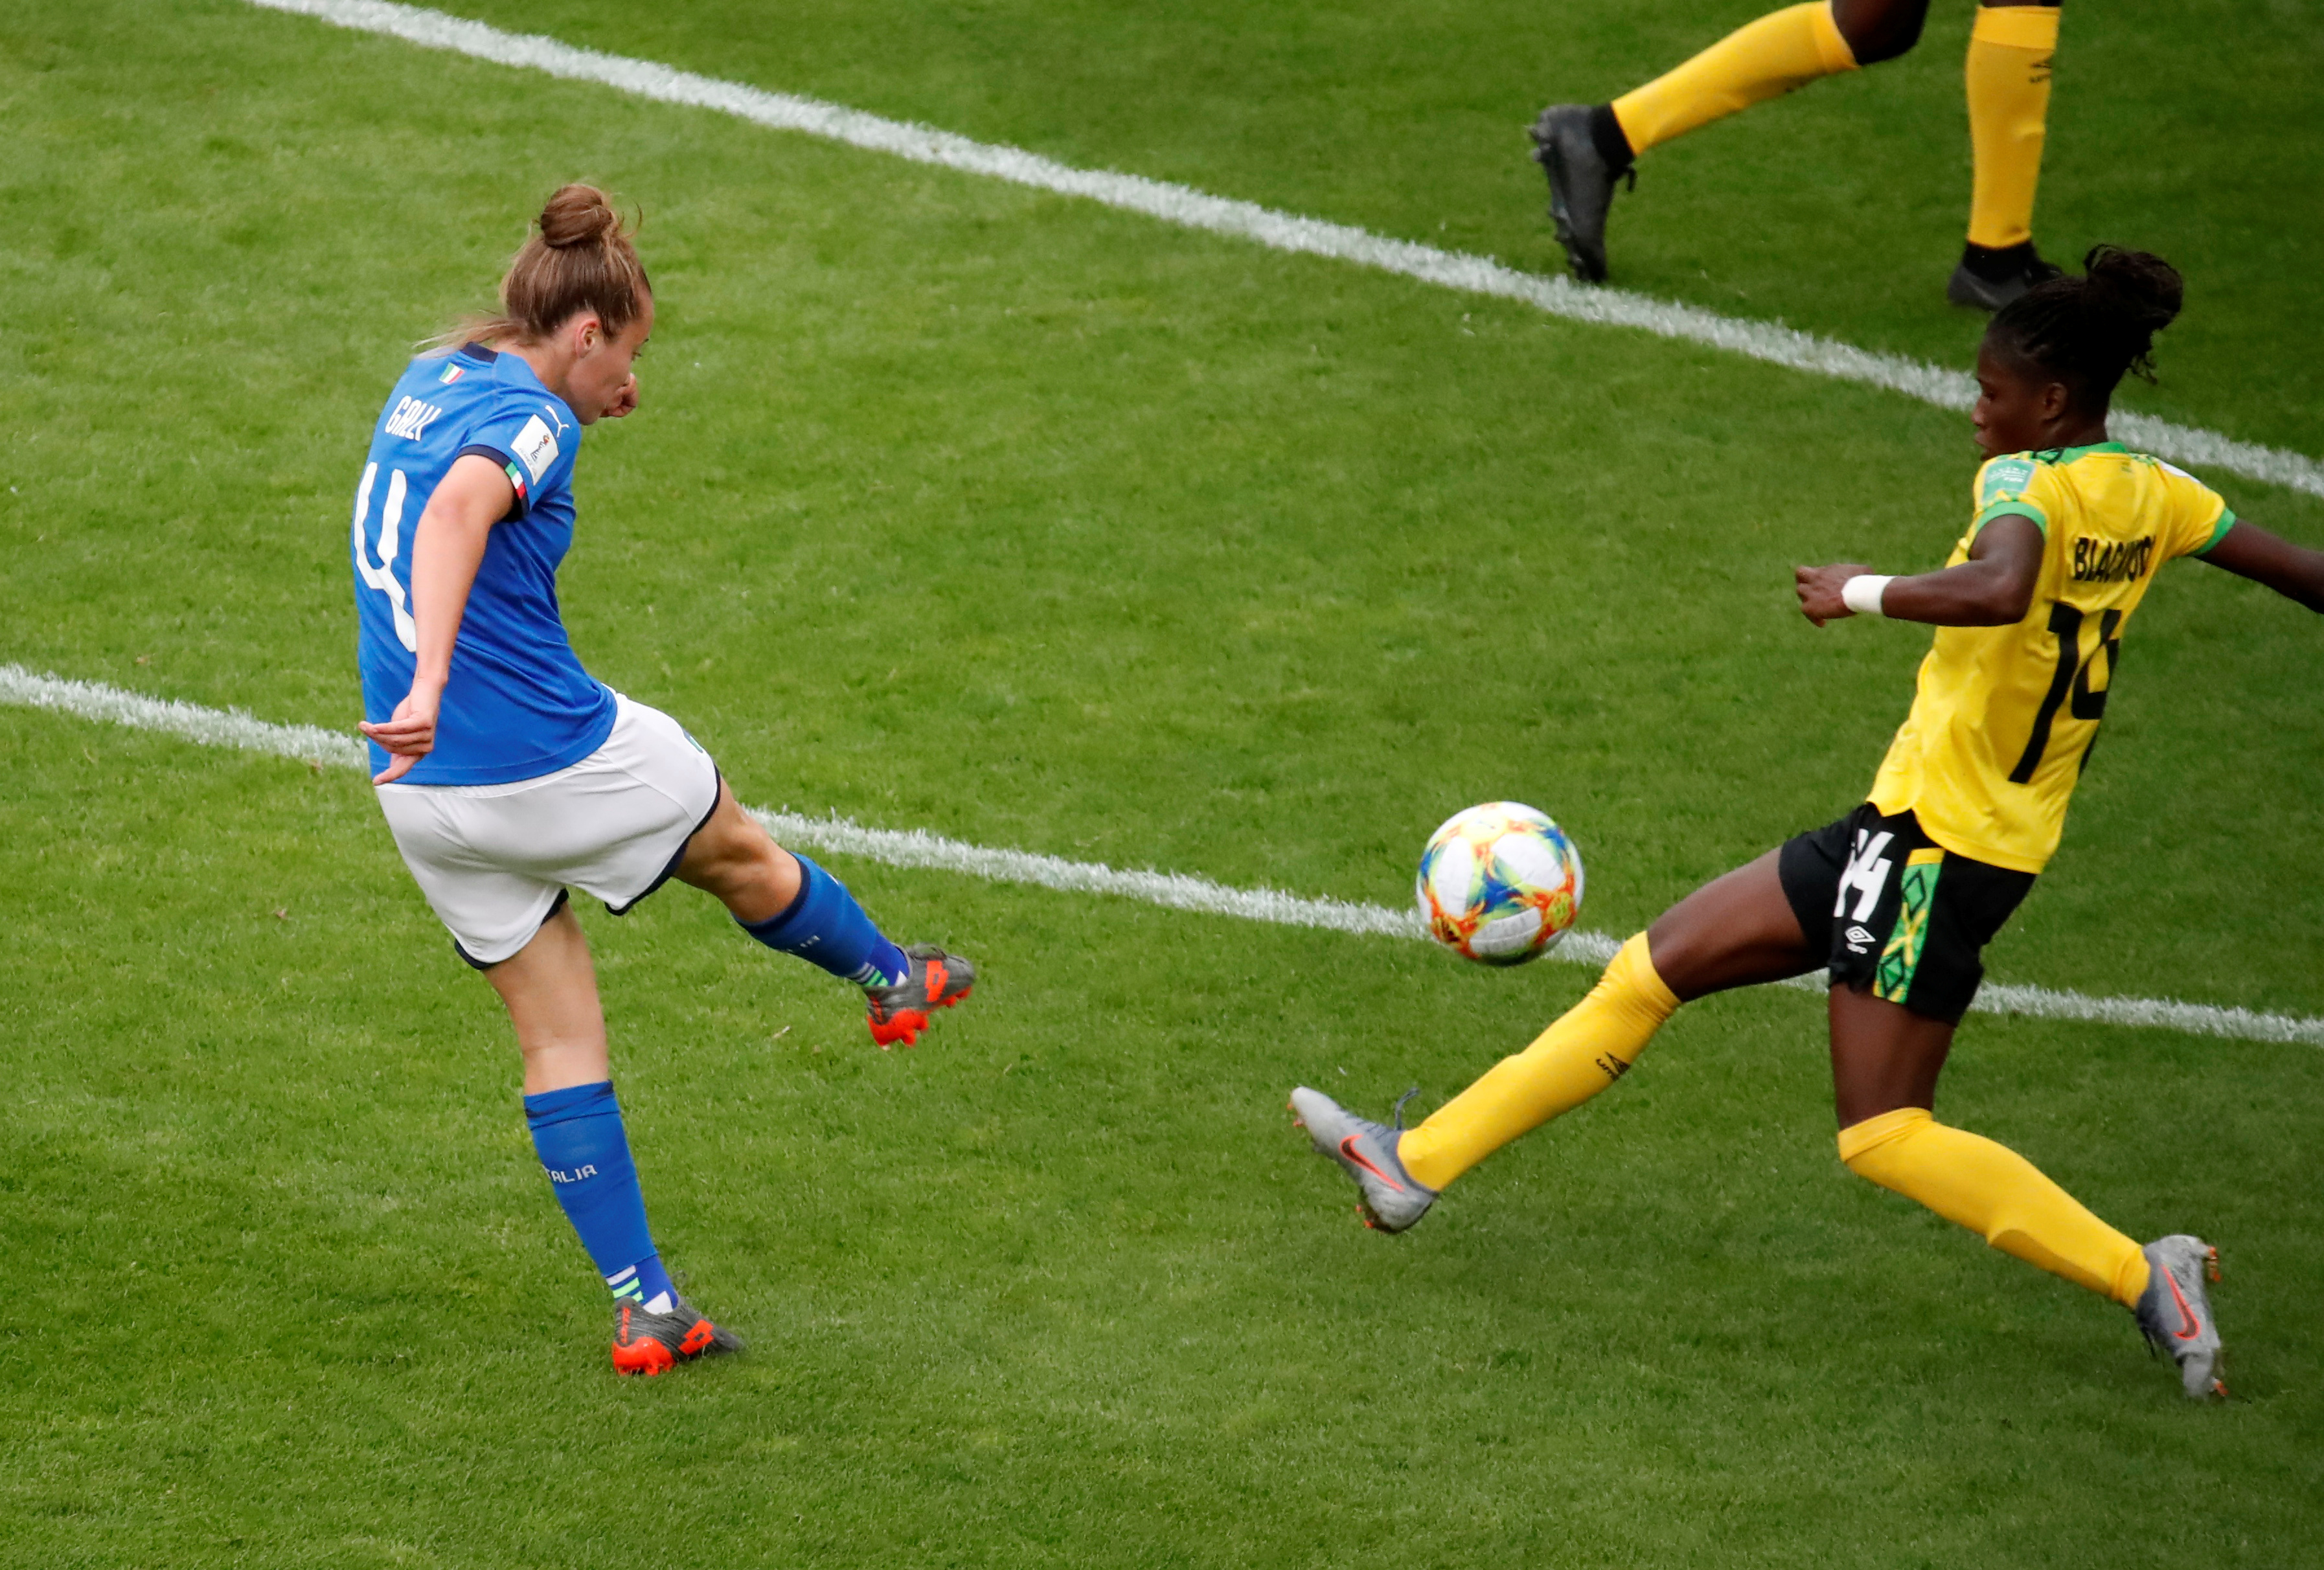 Watch Jamaica v Italy live in the Fifa Women's World Cup - Live